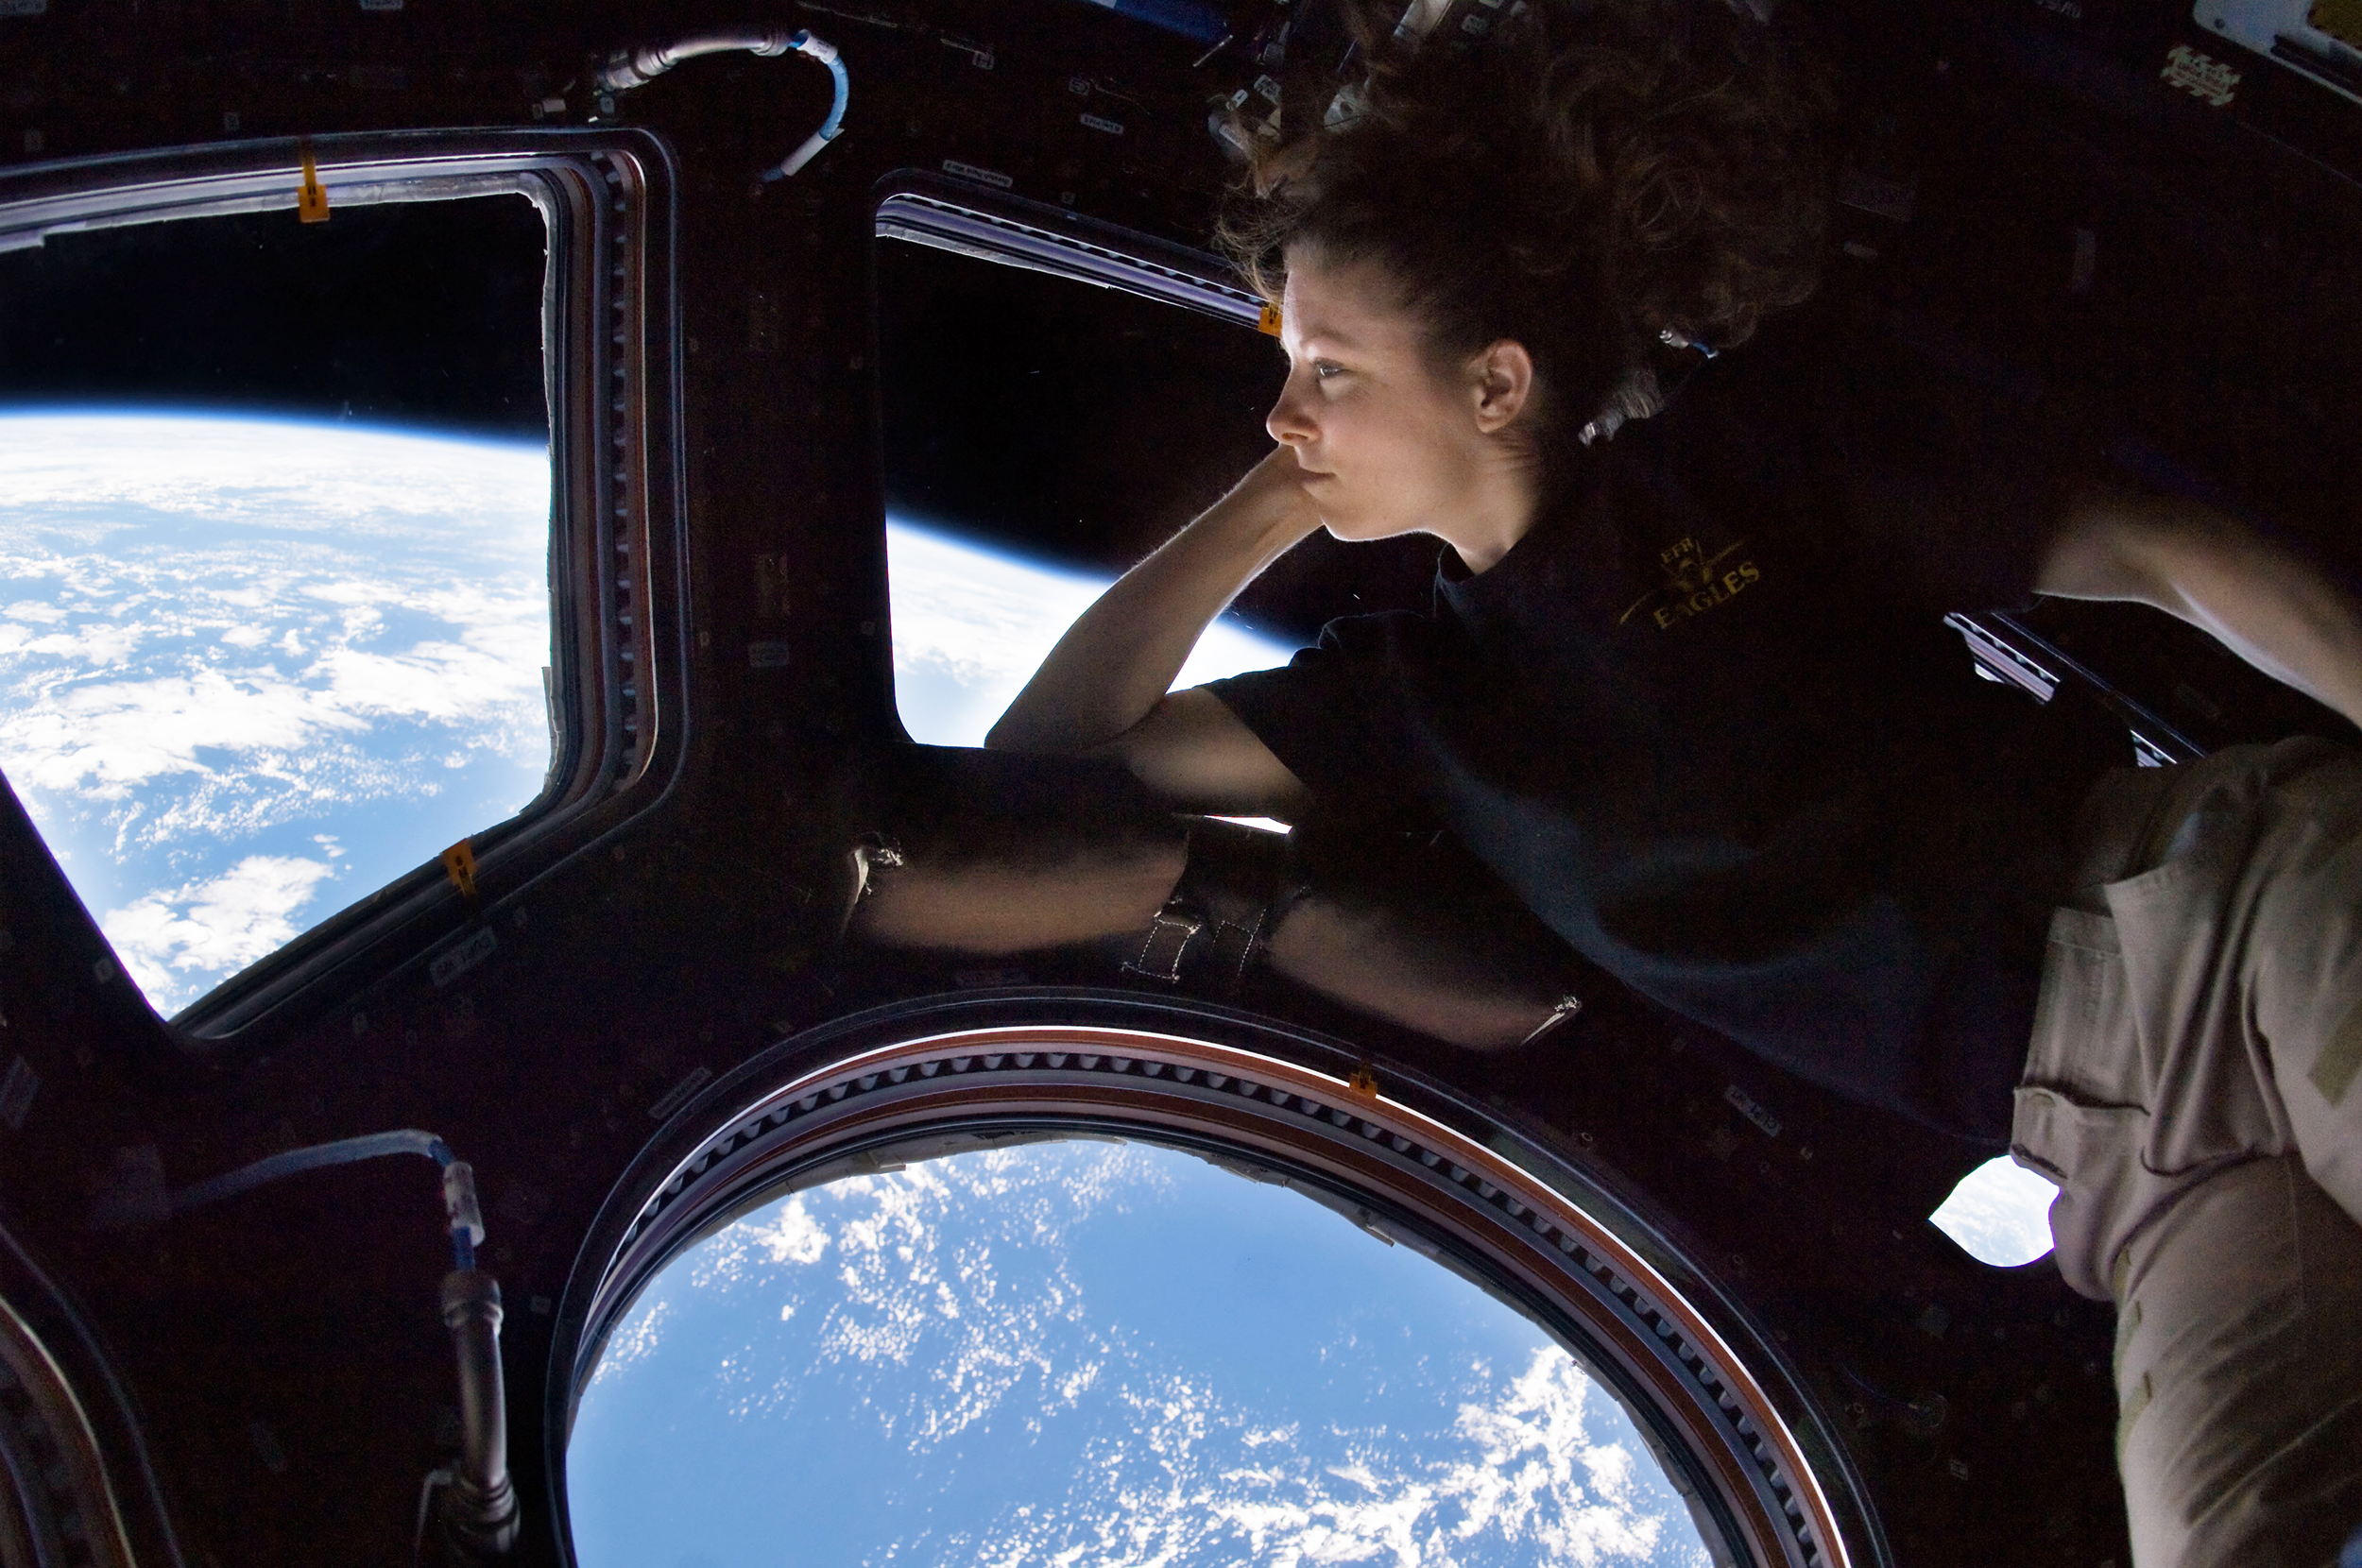 The first all-female spacewalk from the International Space Station (pictured above) was cancelled due to poor planning of spacesuit availability. After missing this groundbreaking opportunity, it is evident that more attention must be paid toward the difference in bodies across genders (courtesy of Creative Commons).